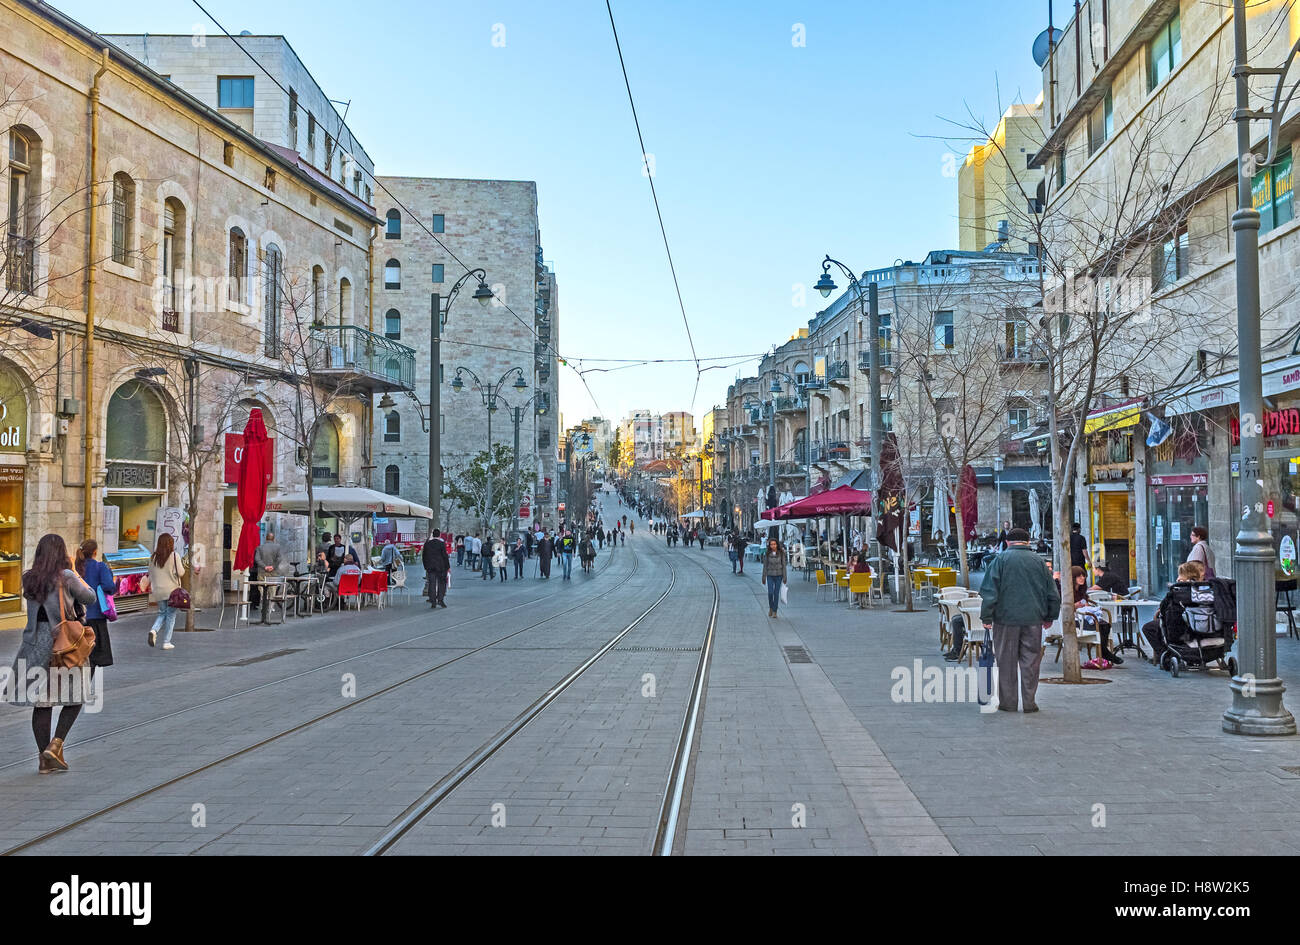 Jaffa Road is one of the major shopping streets in city - Stock Image